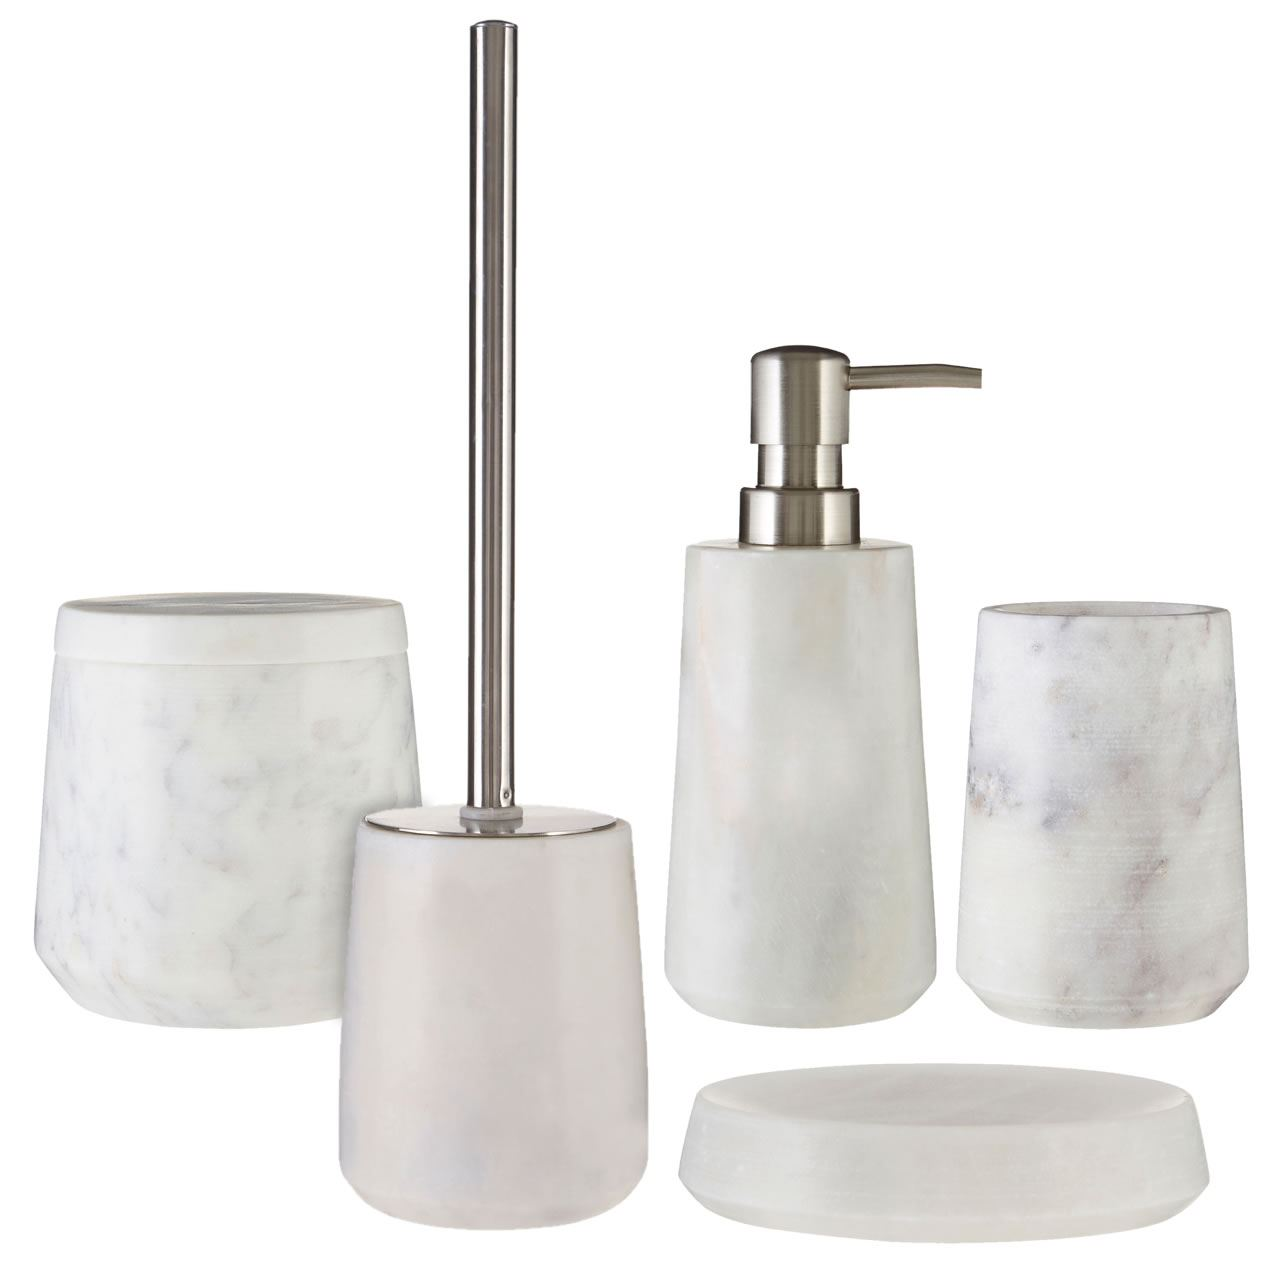 5 piece marble bathroom accessories set soap dish tumbler for Bathroom 5 piece set